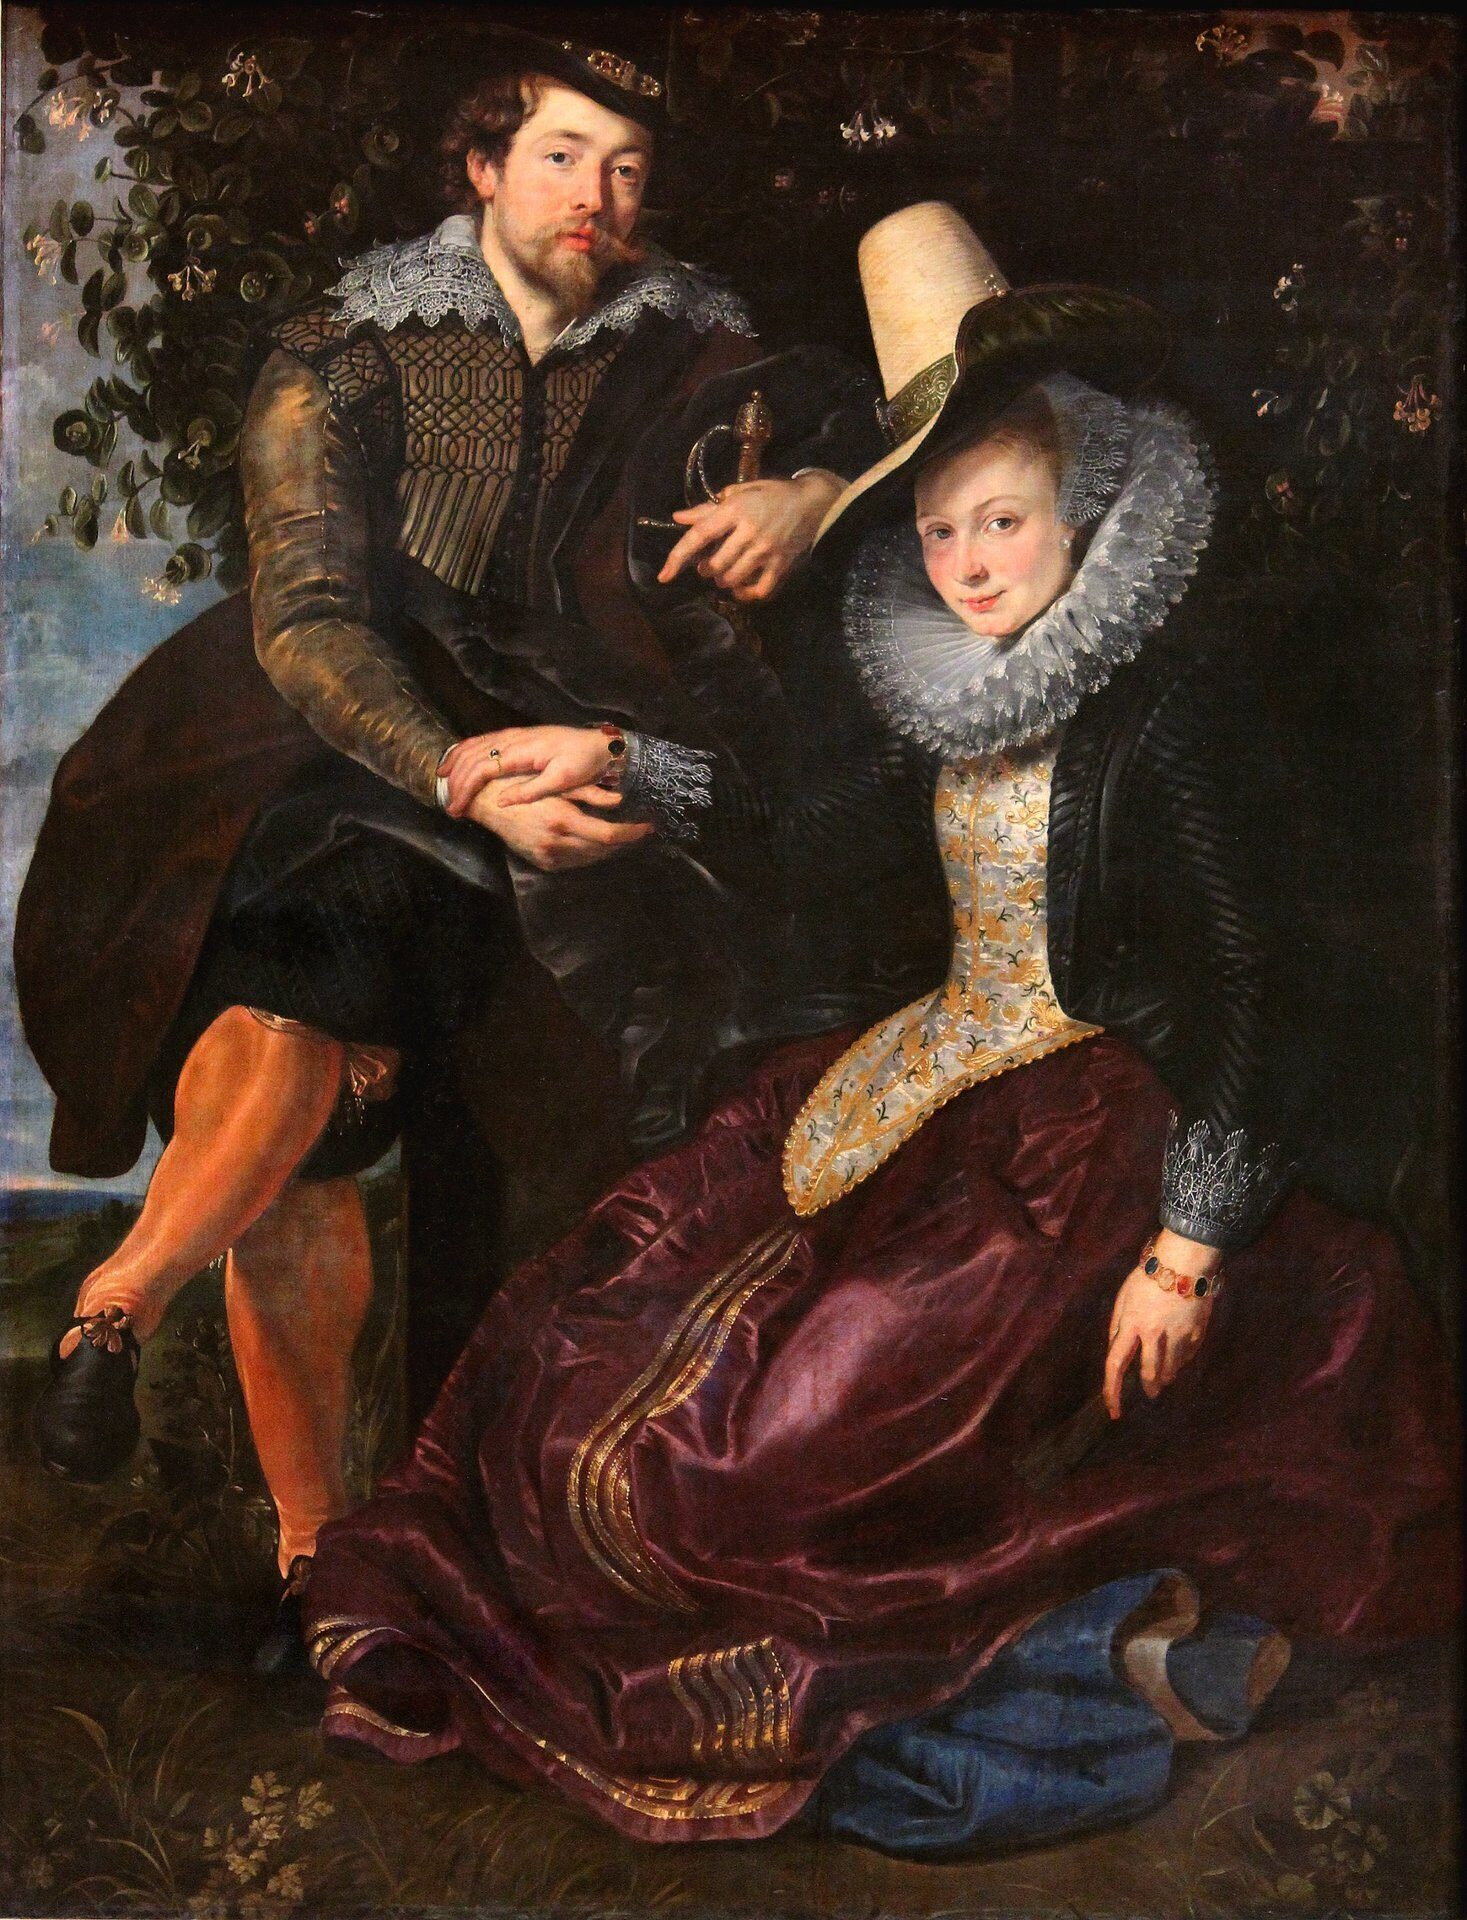 Peter_Paul_Rubens-_The_Artist_and_His_First_Wife,_Isabella_Brant,_in_the_Honeysuckle_Bower